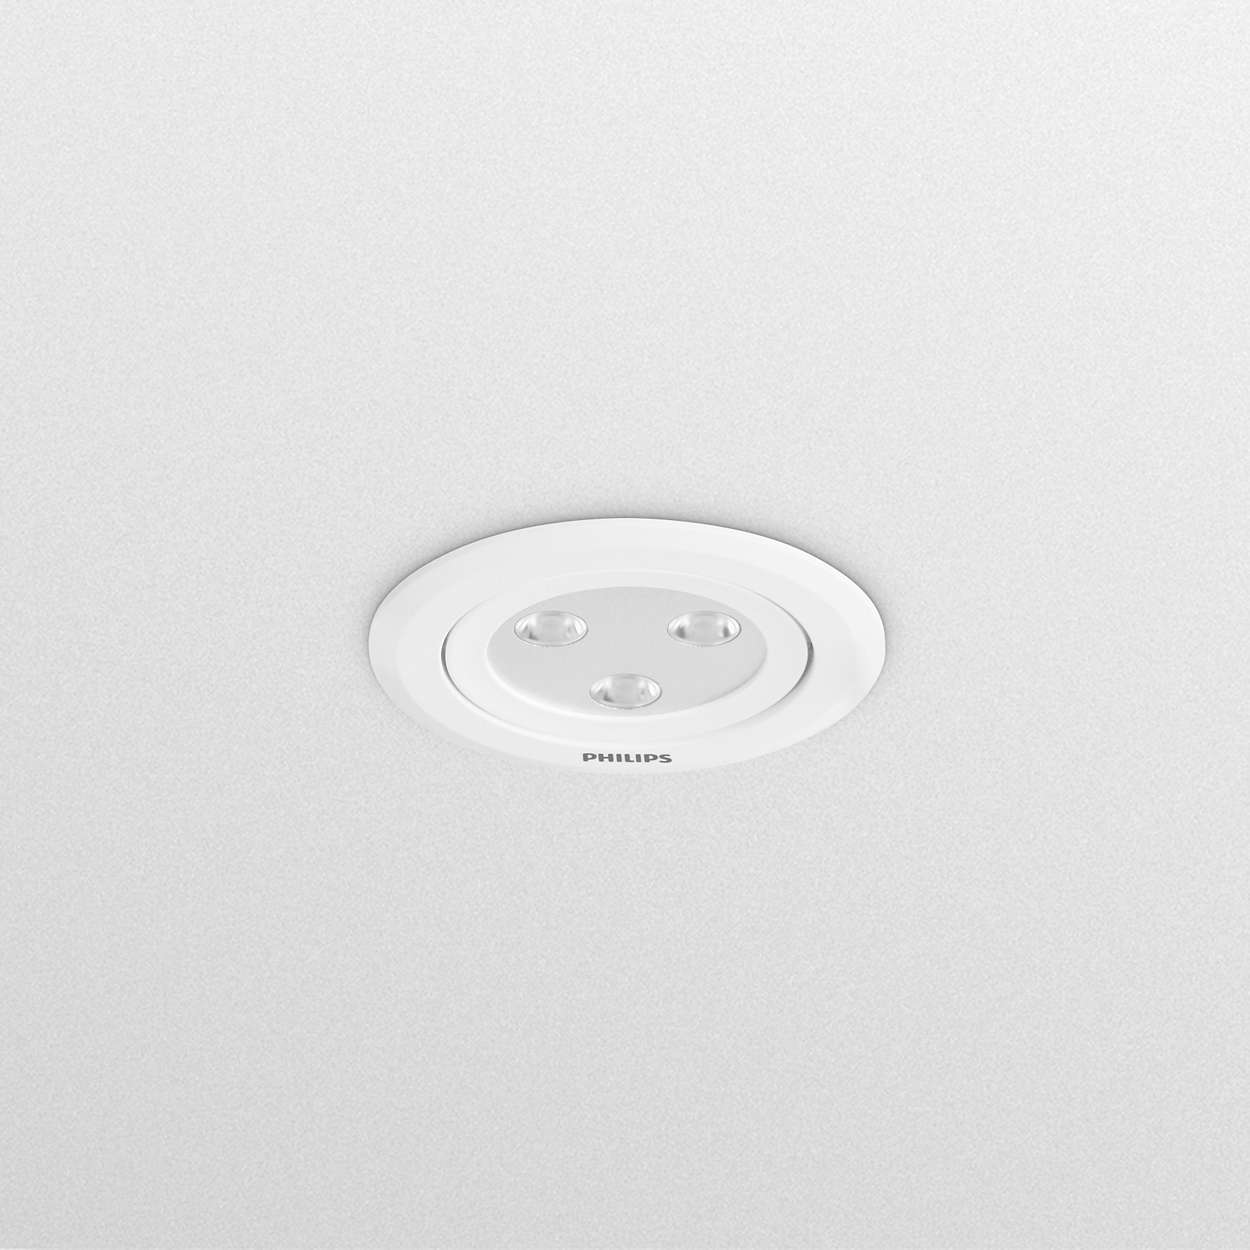 SmartBright LED Accent – green solution